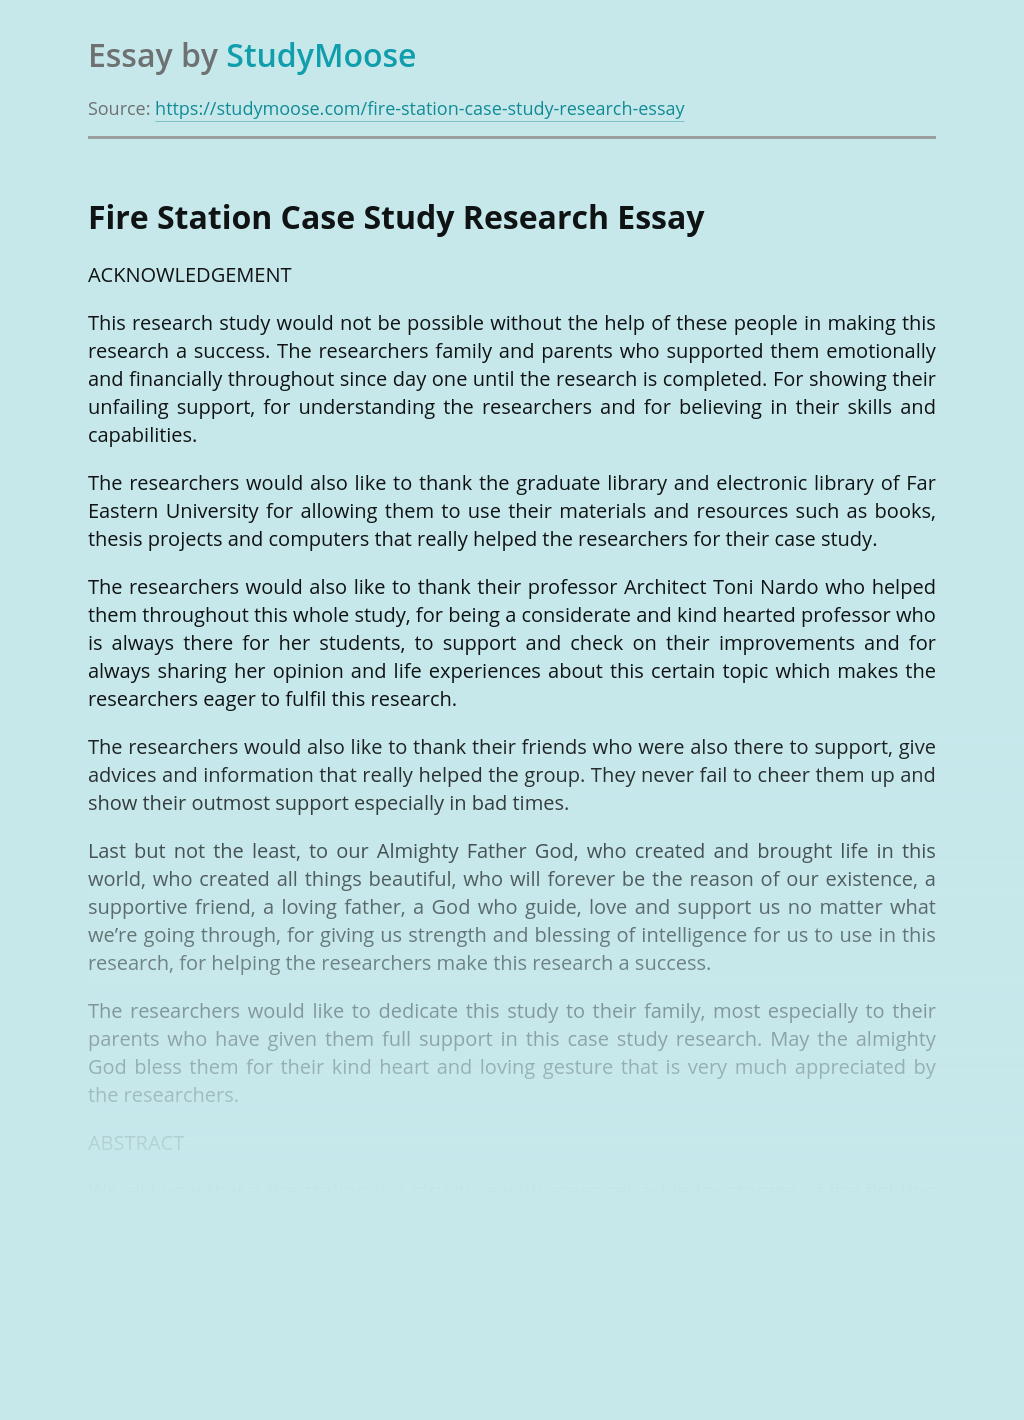 Fire Station Case Study Research